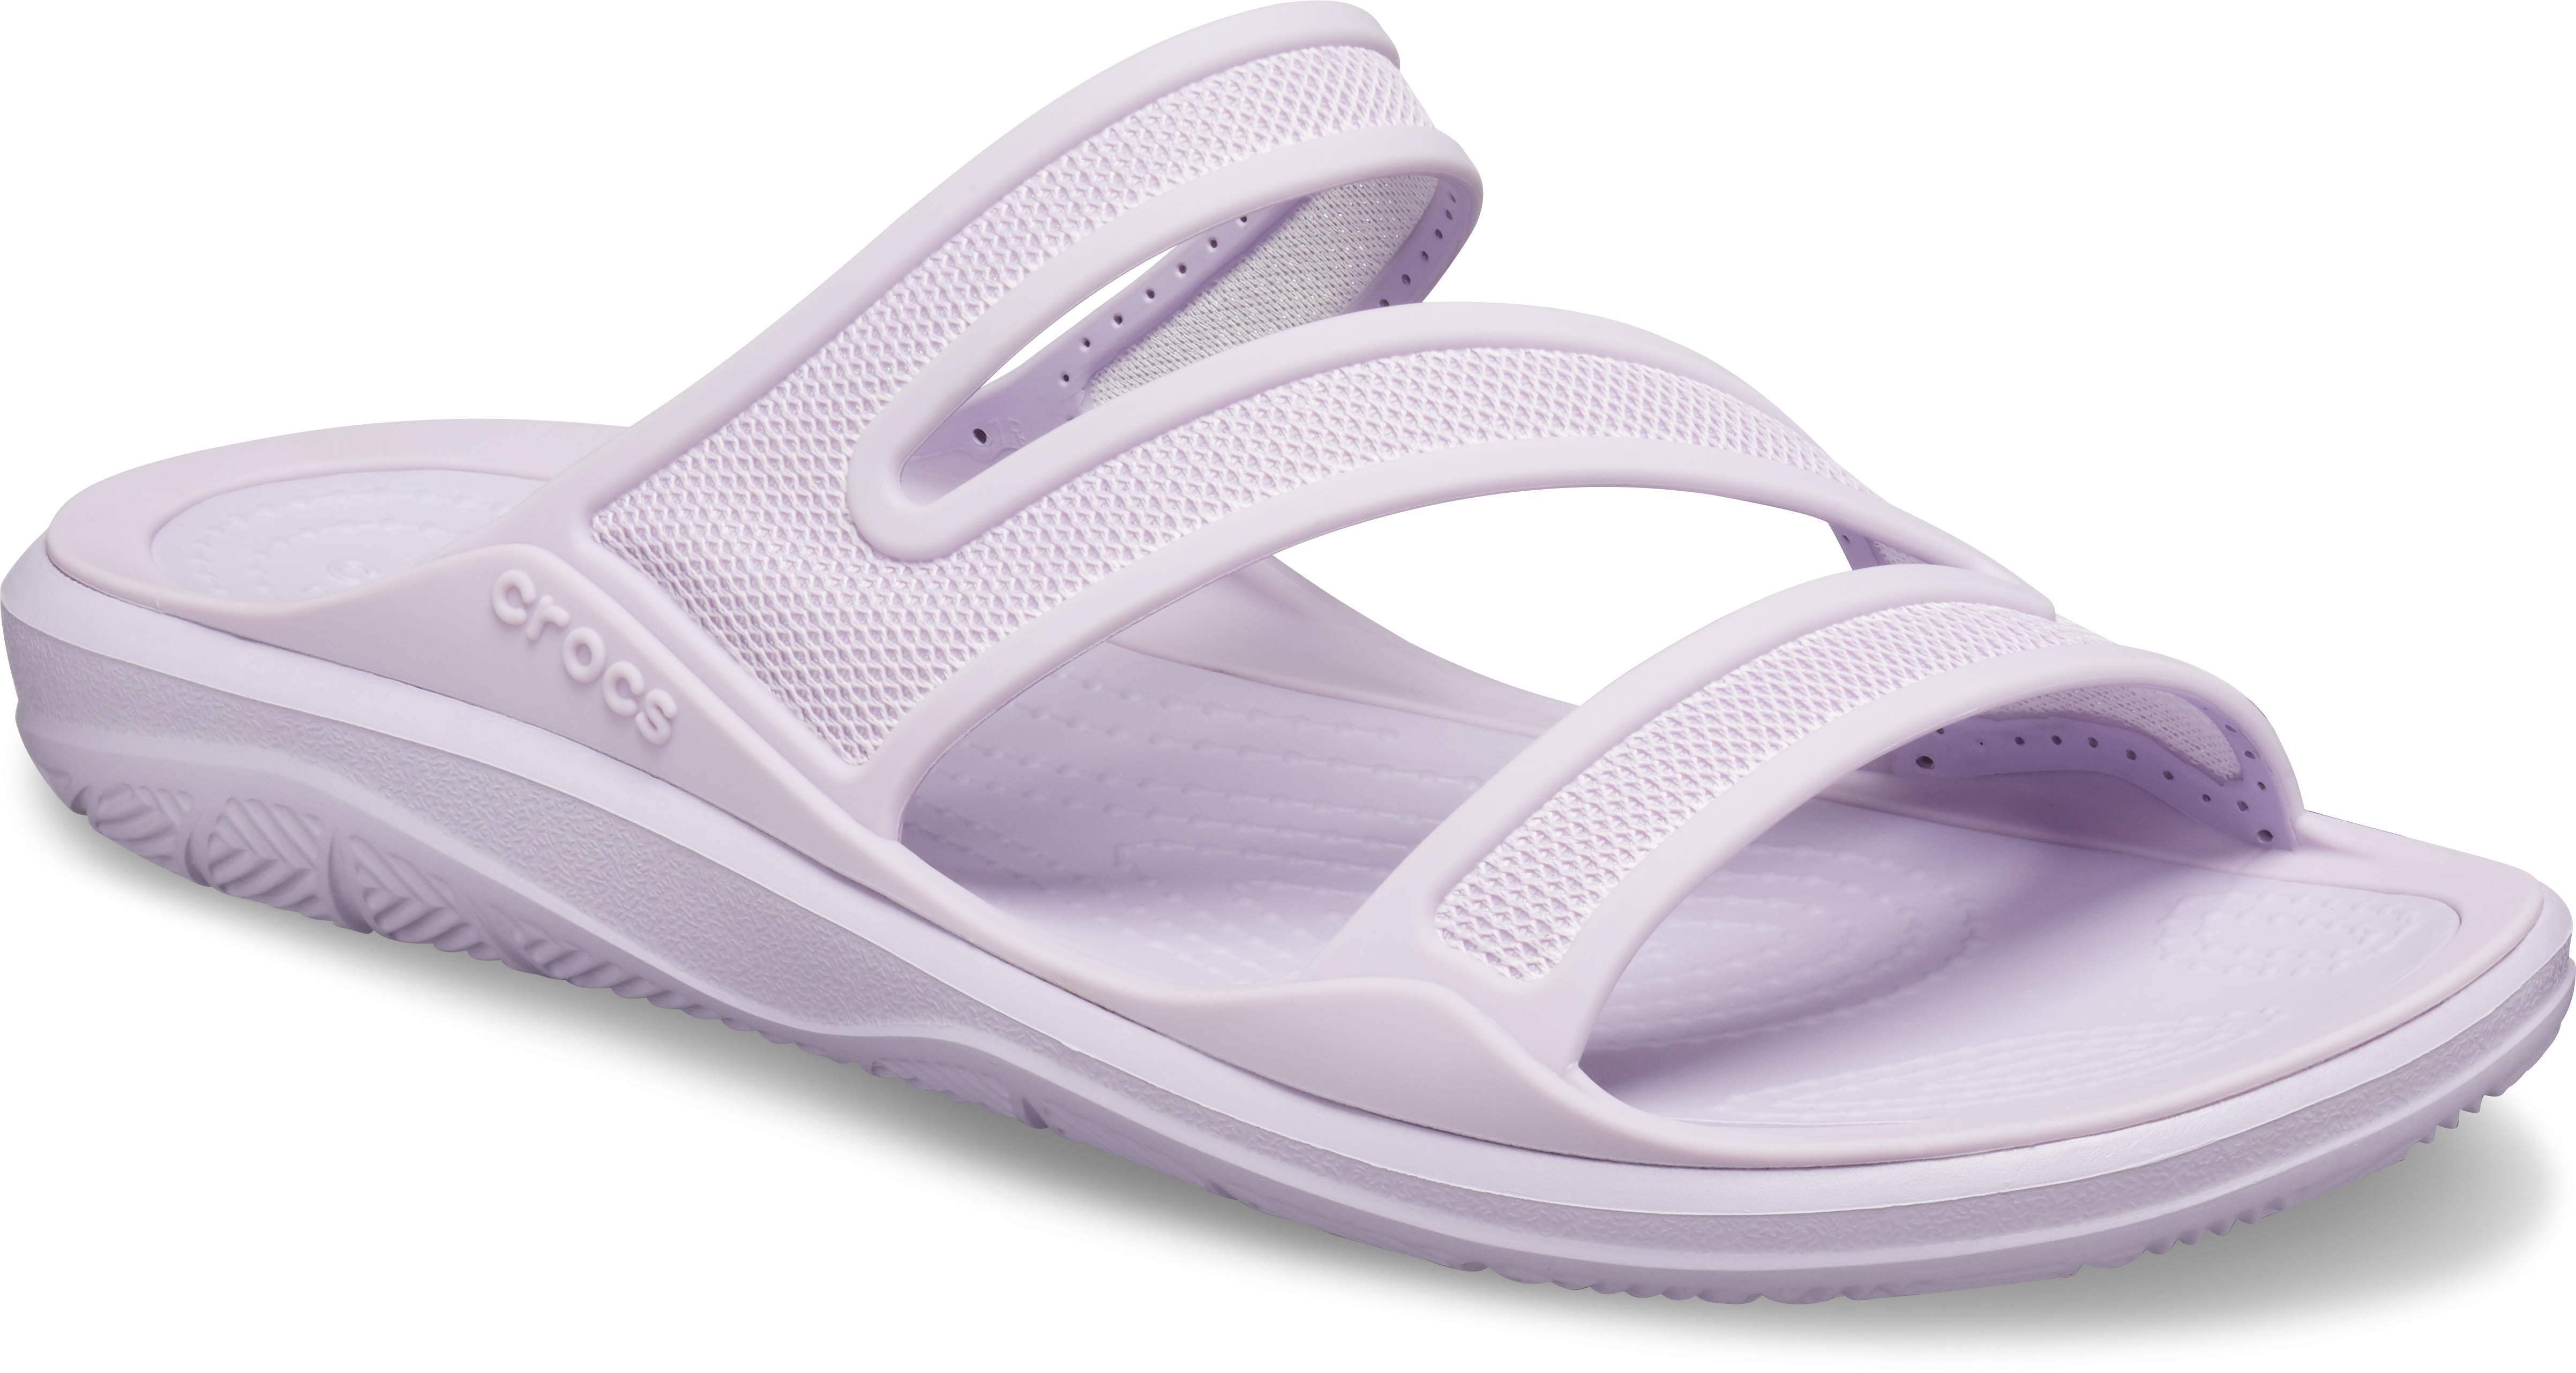 Crocs Swiftwater Womens Casual Sandals